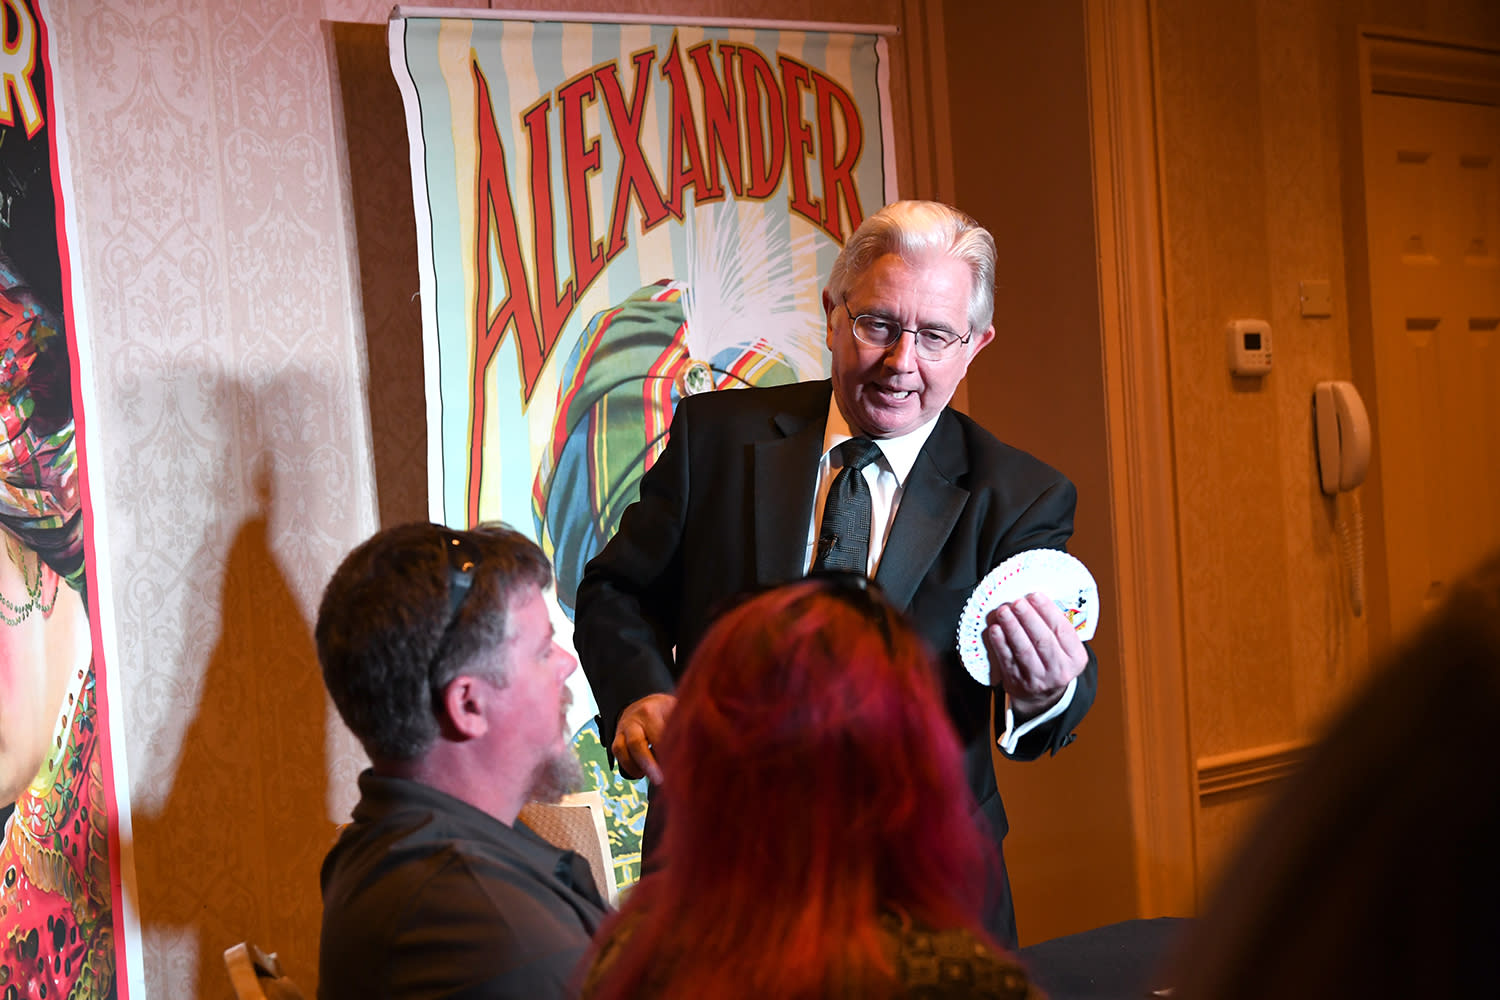 Magician Paul Gertner in Boston, MA